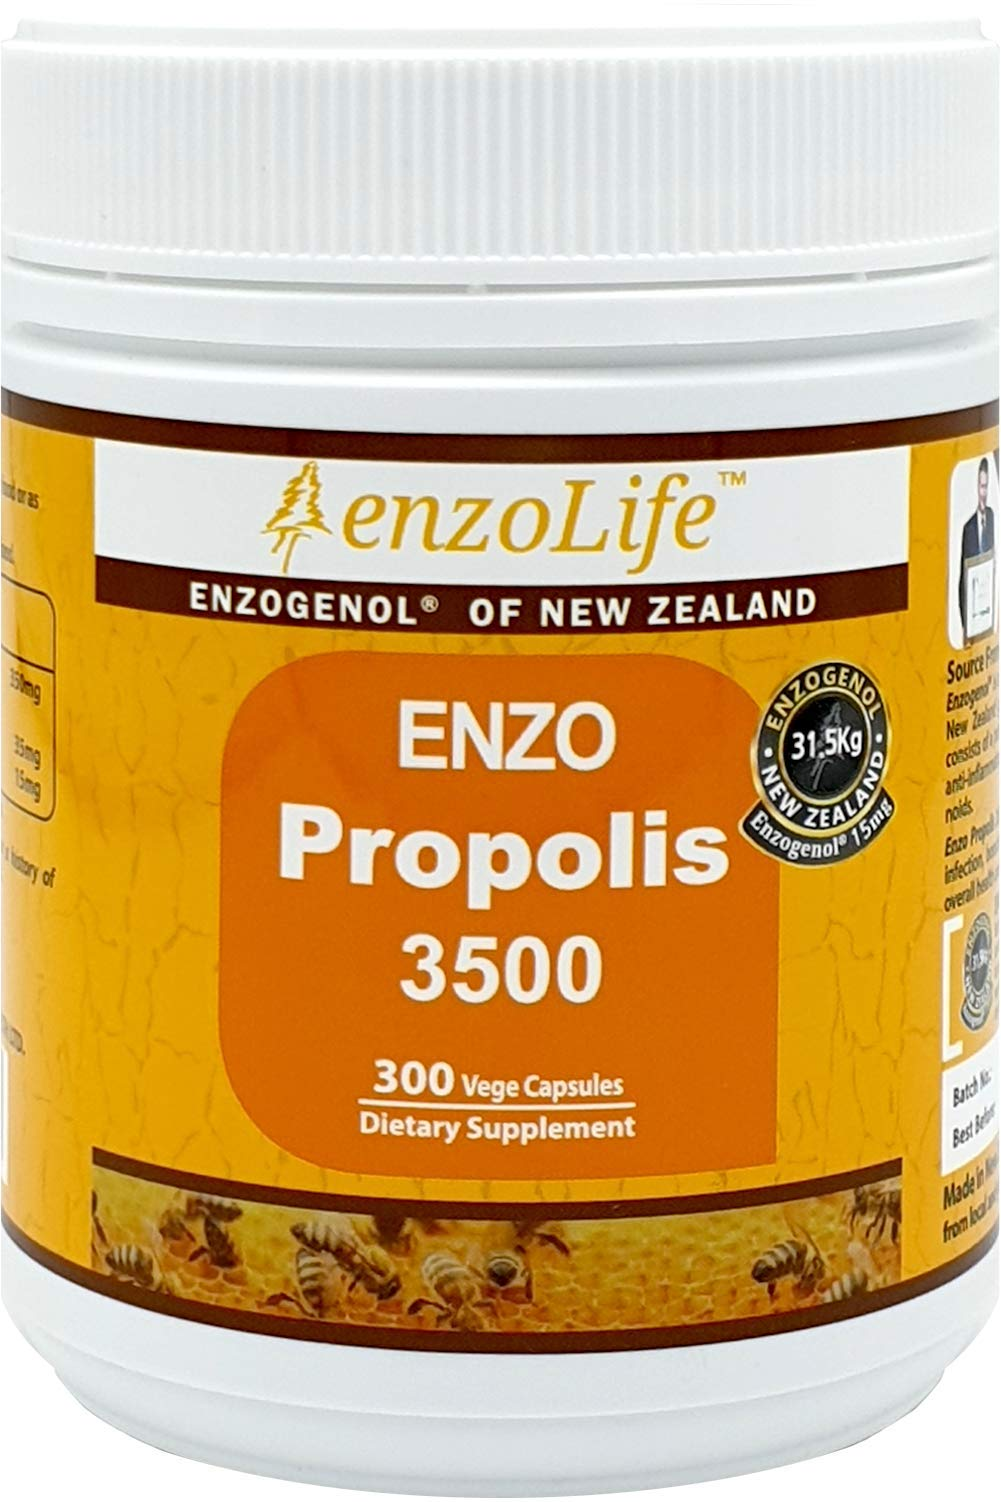 New-Zealand Bee Propolis 3500 300 Capsules Support a Healthy Immune System (1 Bottle) by EnzoLife (Image #1)